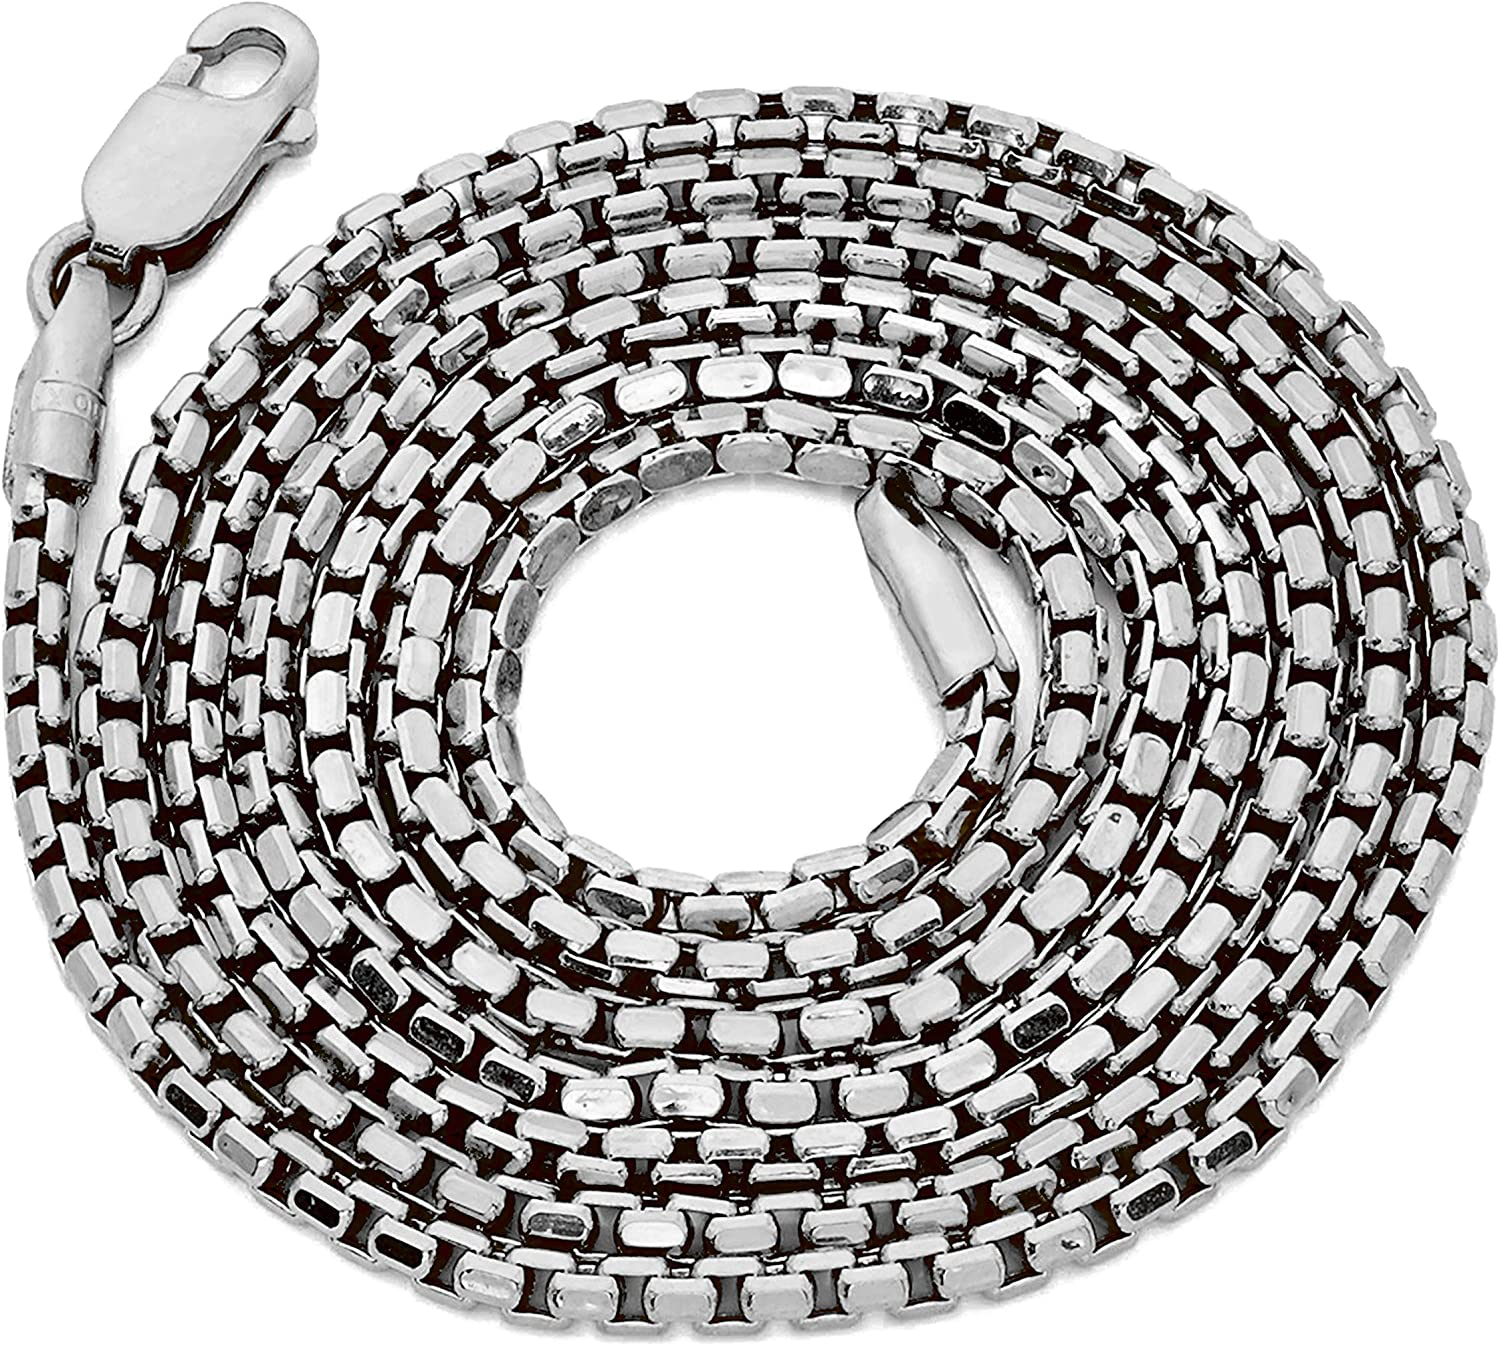 LoveBling 10K White Gold 1.5mm Open Hollow Venetian Box Chain Necklace (Available from 18-24 inches)